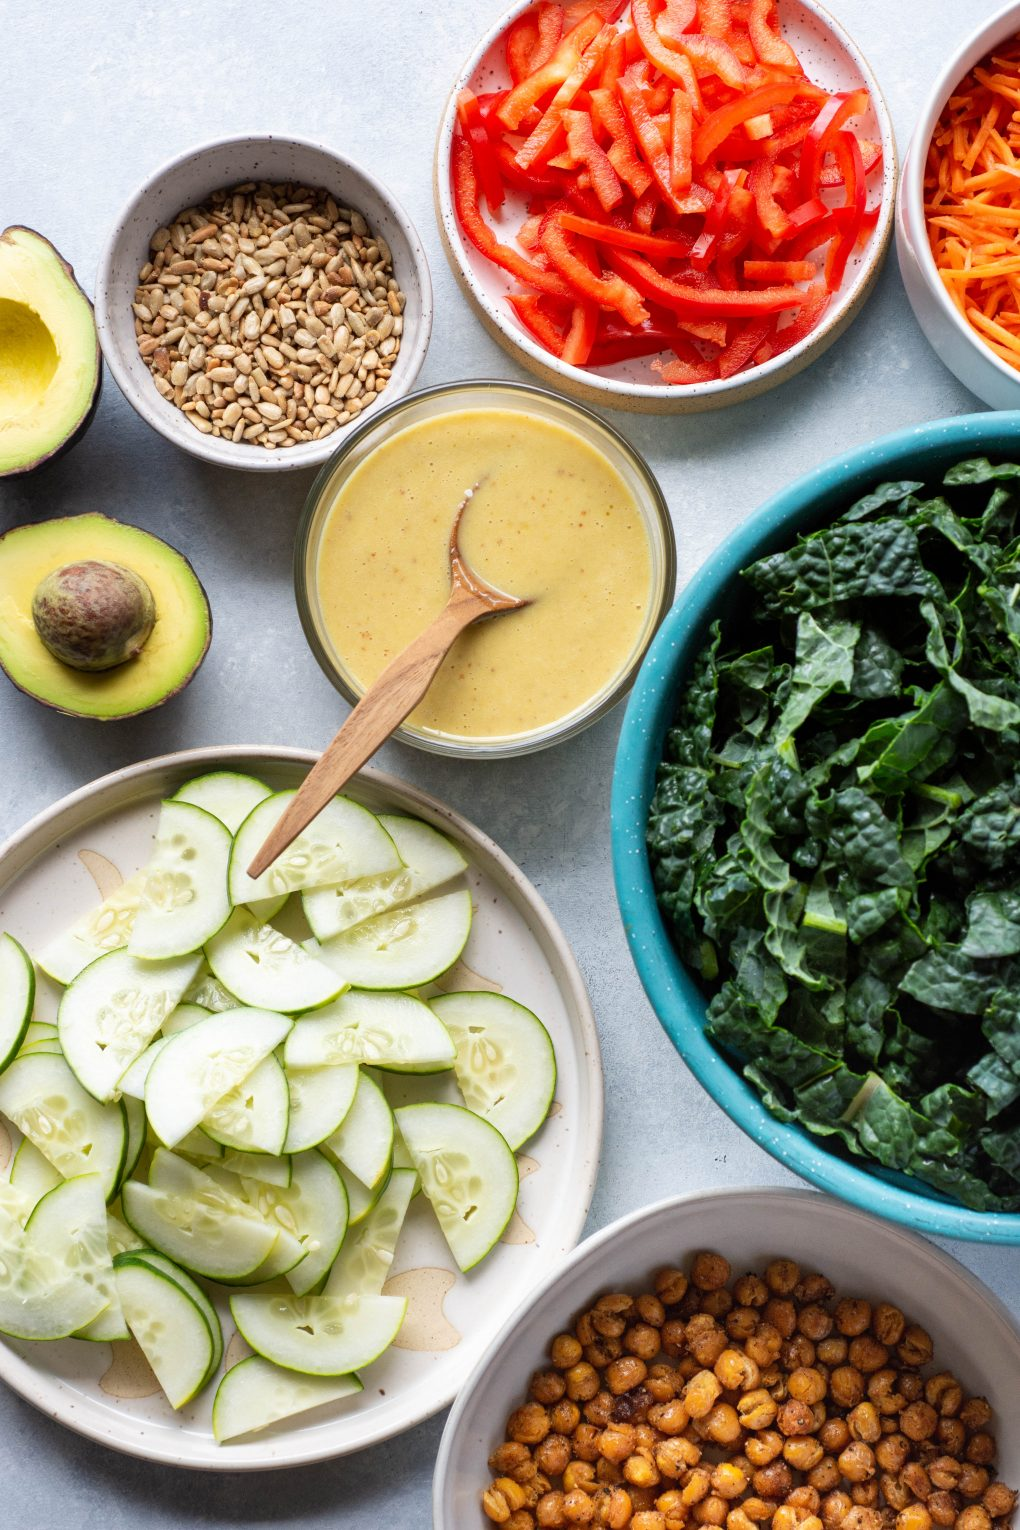 An assortment of bowls and plates filled with ingredients for a hearty kale salad - a bowl of kale, a plate of sliced cucumber, a bowl of honey mustard dressing, a bowl of sliced red pepper, a bowl of sunflower seeds, and a cut avocado. On a light colored background.